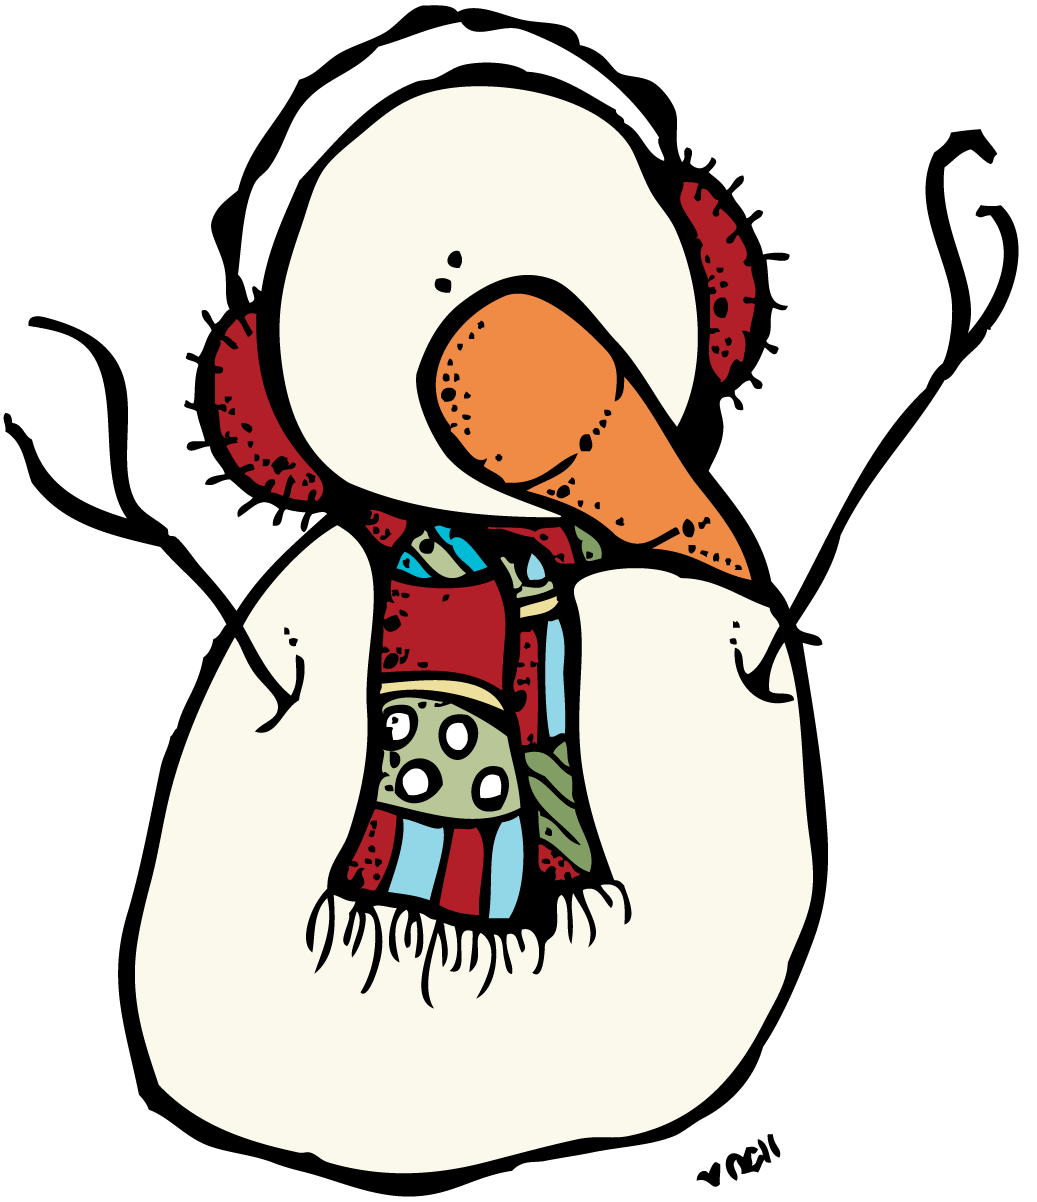 Basketball snowman clipart picture library 28+ Collection of Melonheadz Clipart Winter | High quality, free ... picture library